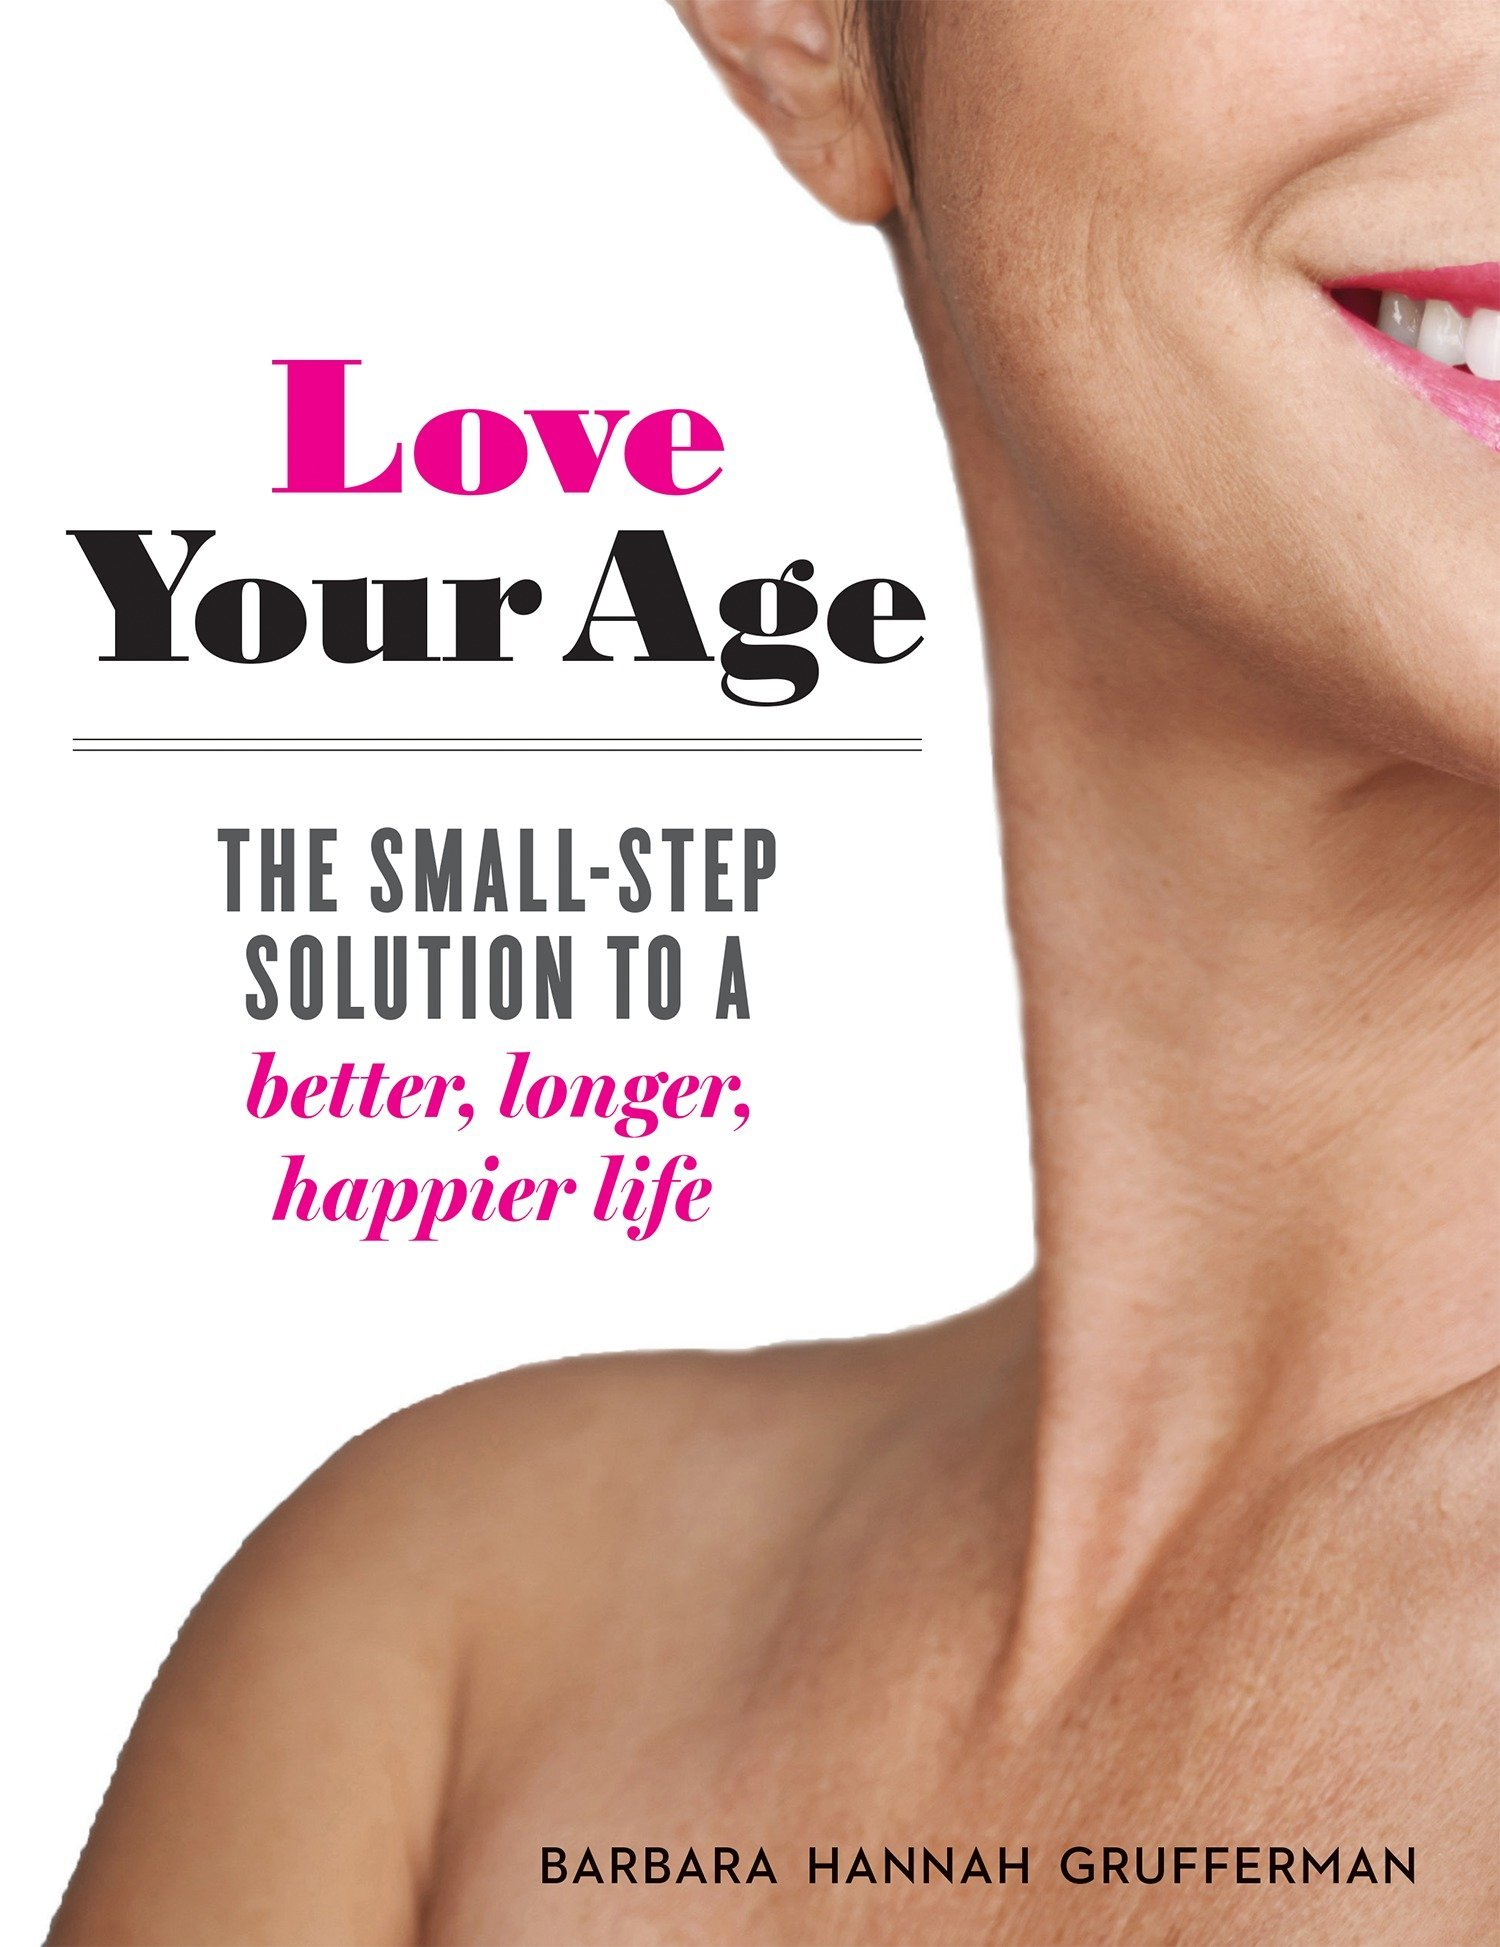 Love Your Age: The Small-Step Solution to a Better, Longer, Happier Life:  Barbara Hannah Grufferman: 9781426218323: Amazon.com: Books